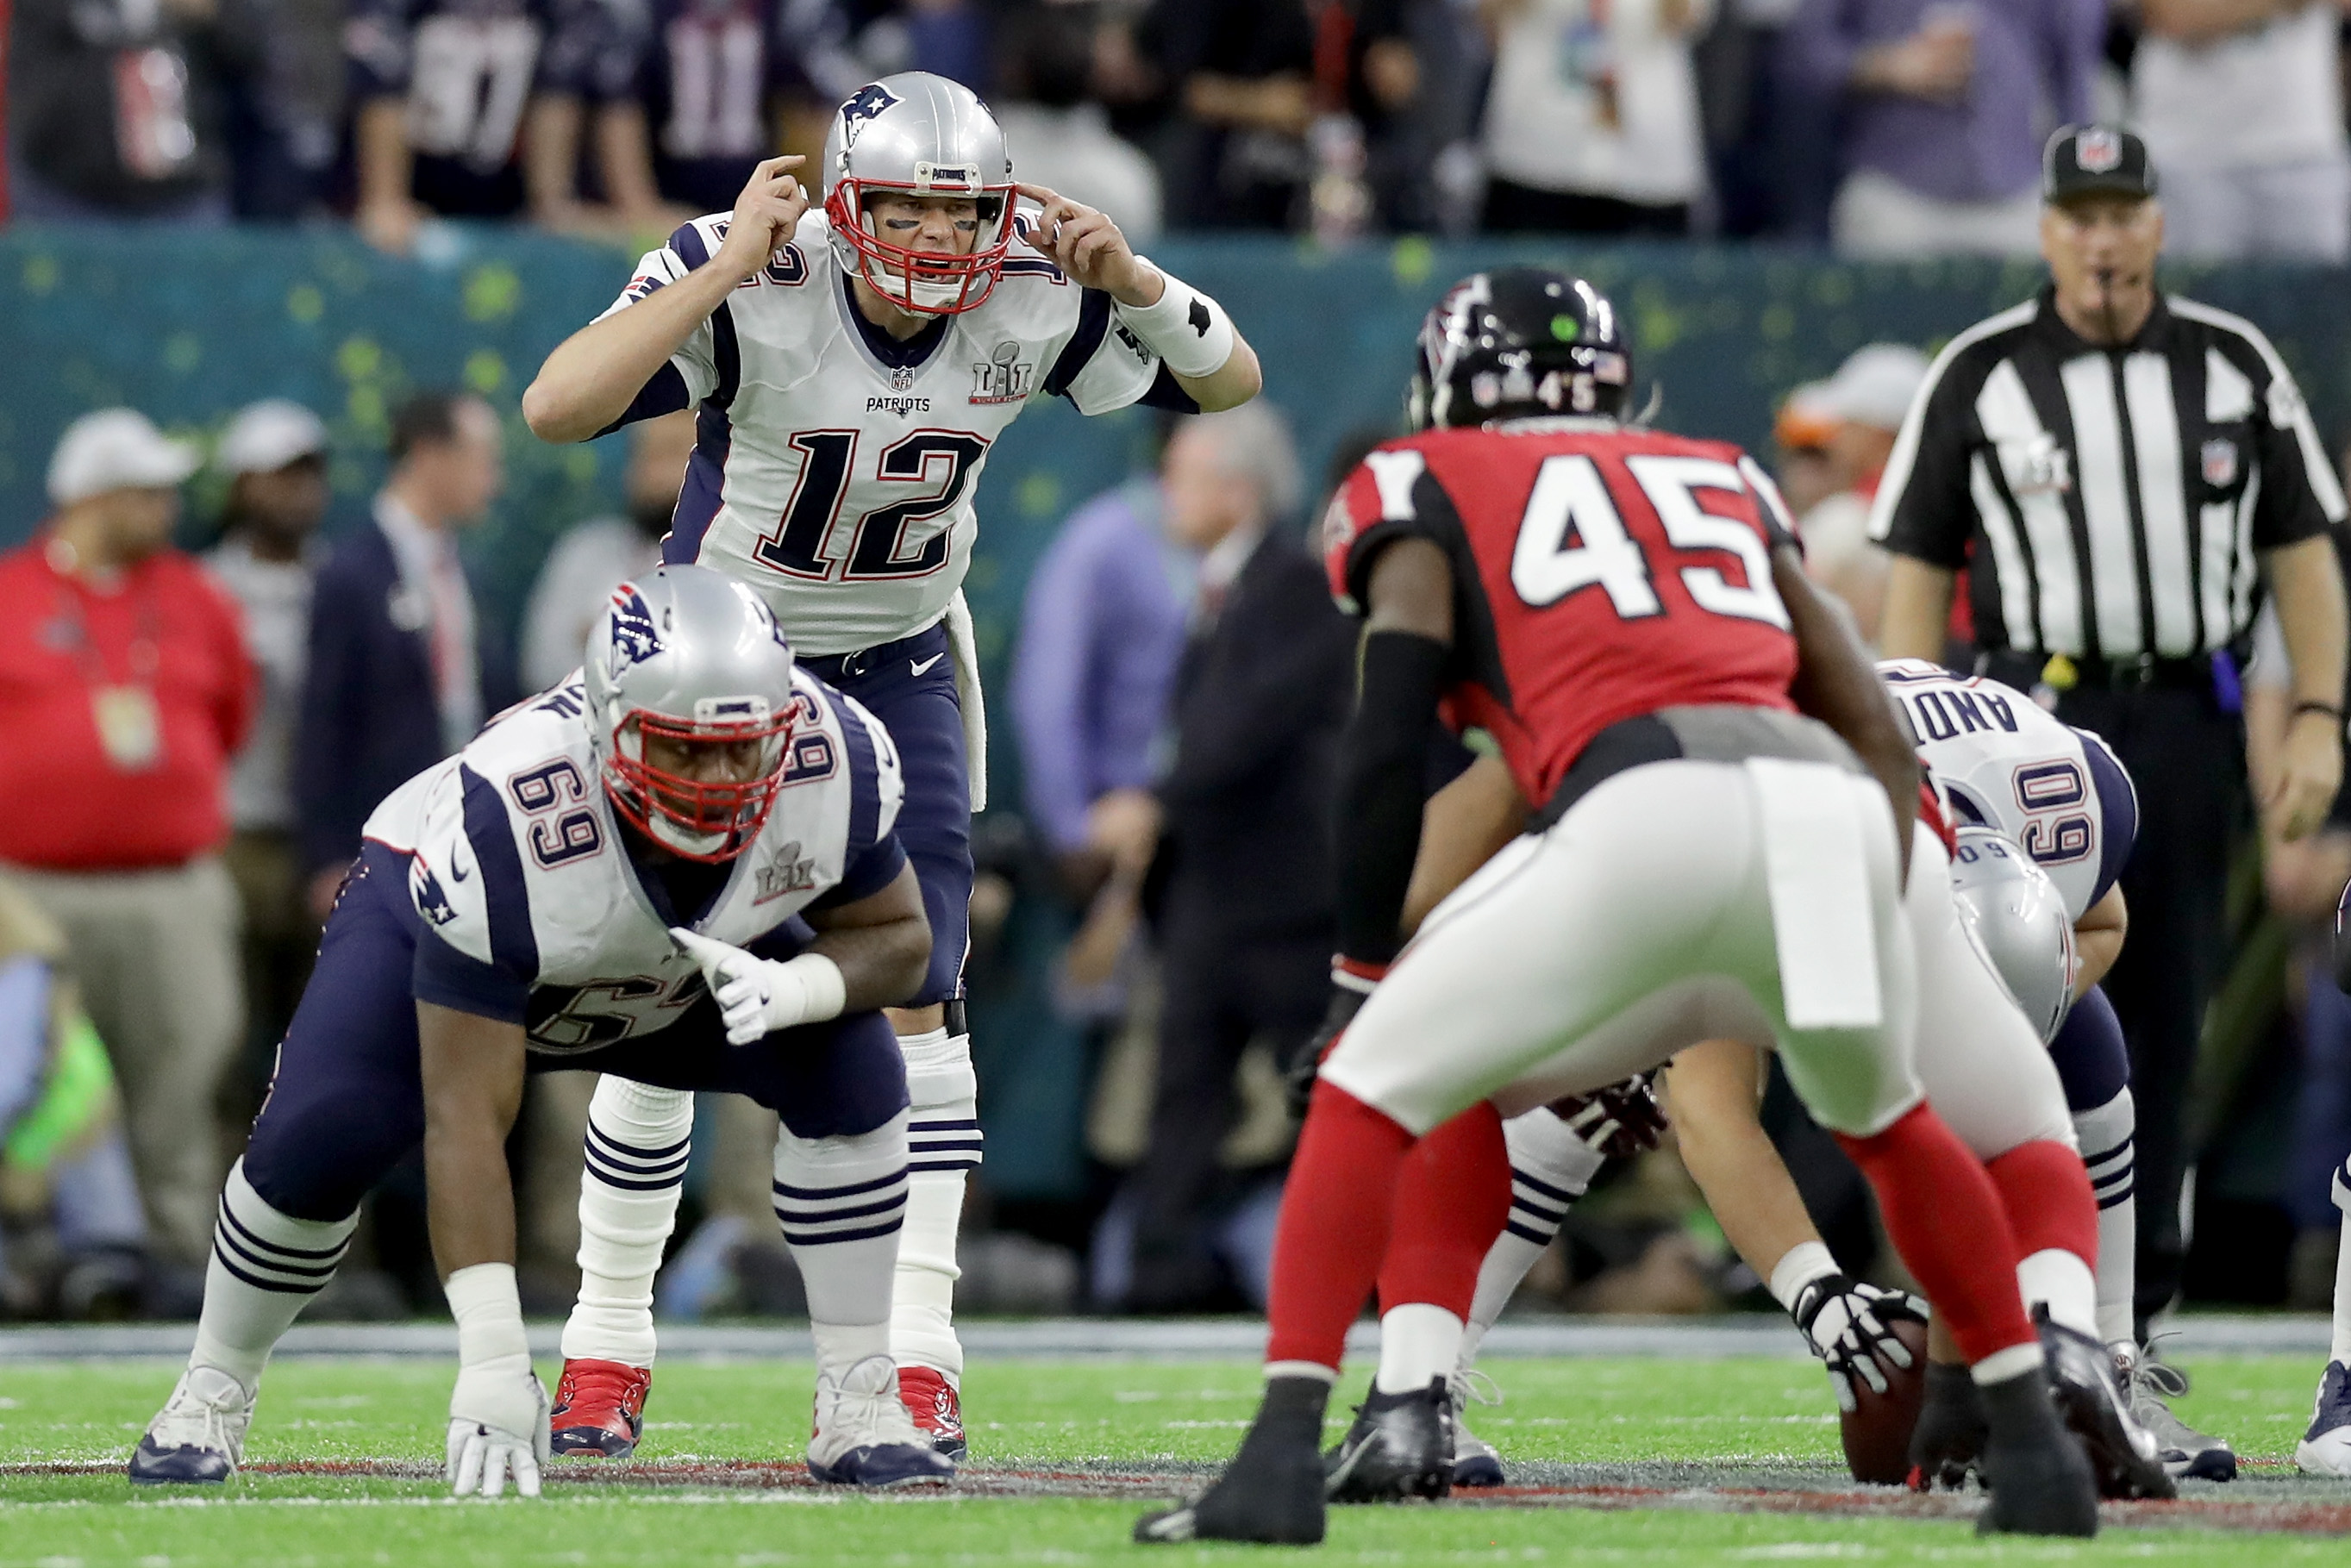 NFL schedule 2017 released: Dates and times for all games